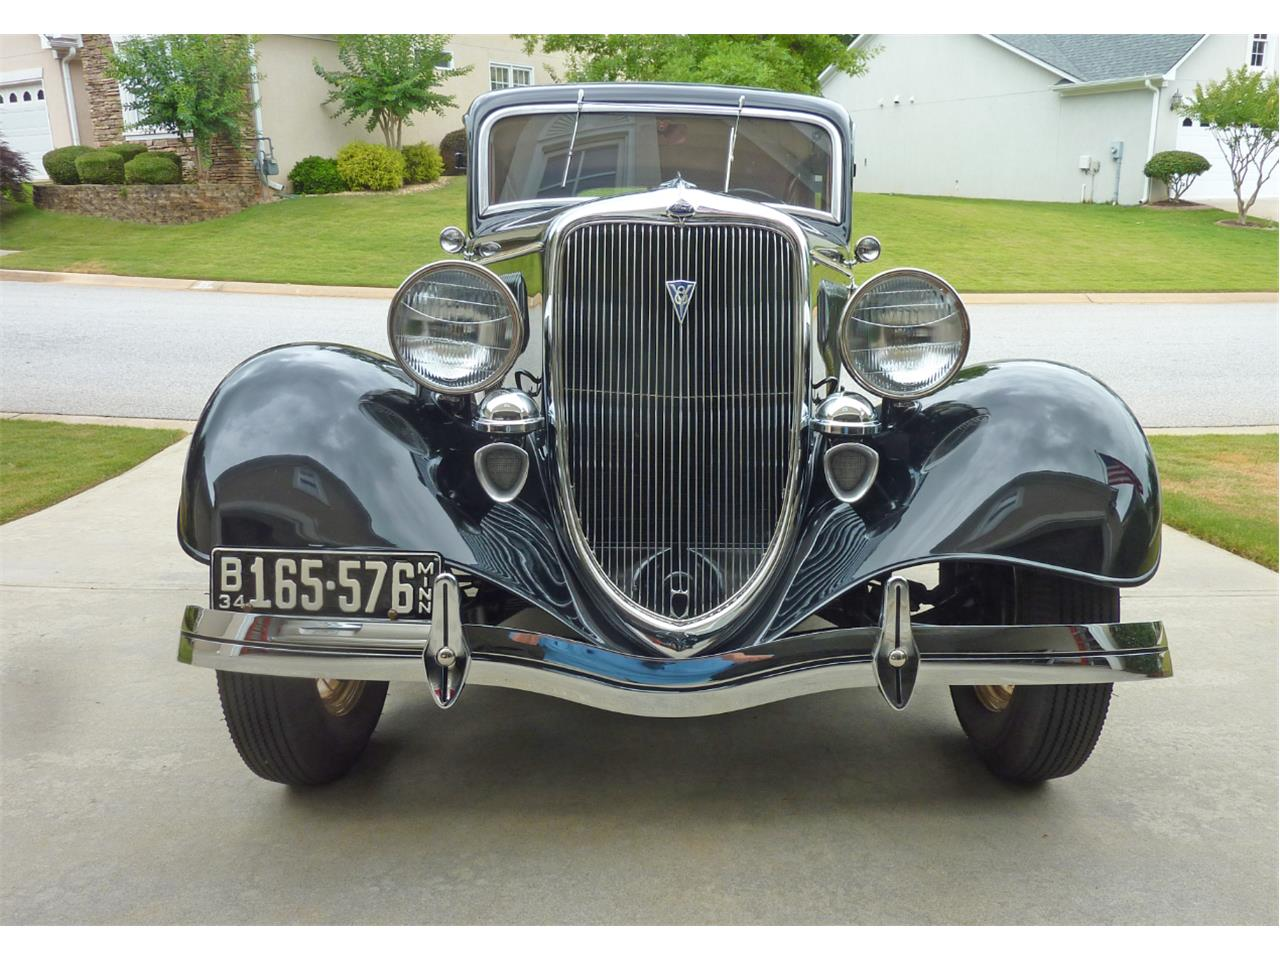 Large Picture of '34 Ford Sedan located in Georgia - $46,000.00 Offered by a Private Seller - ISZK